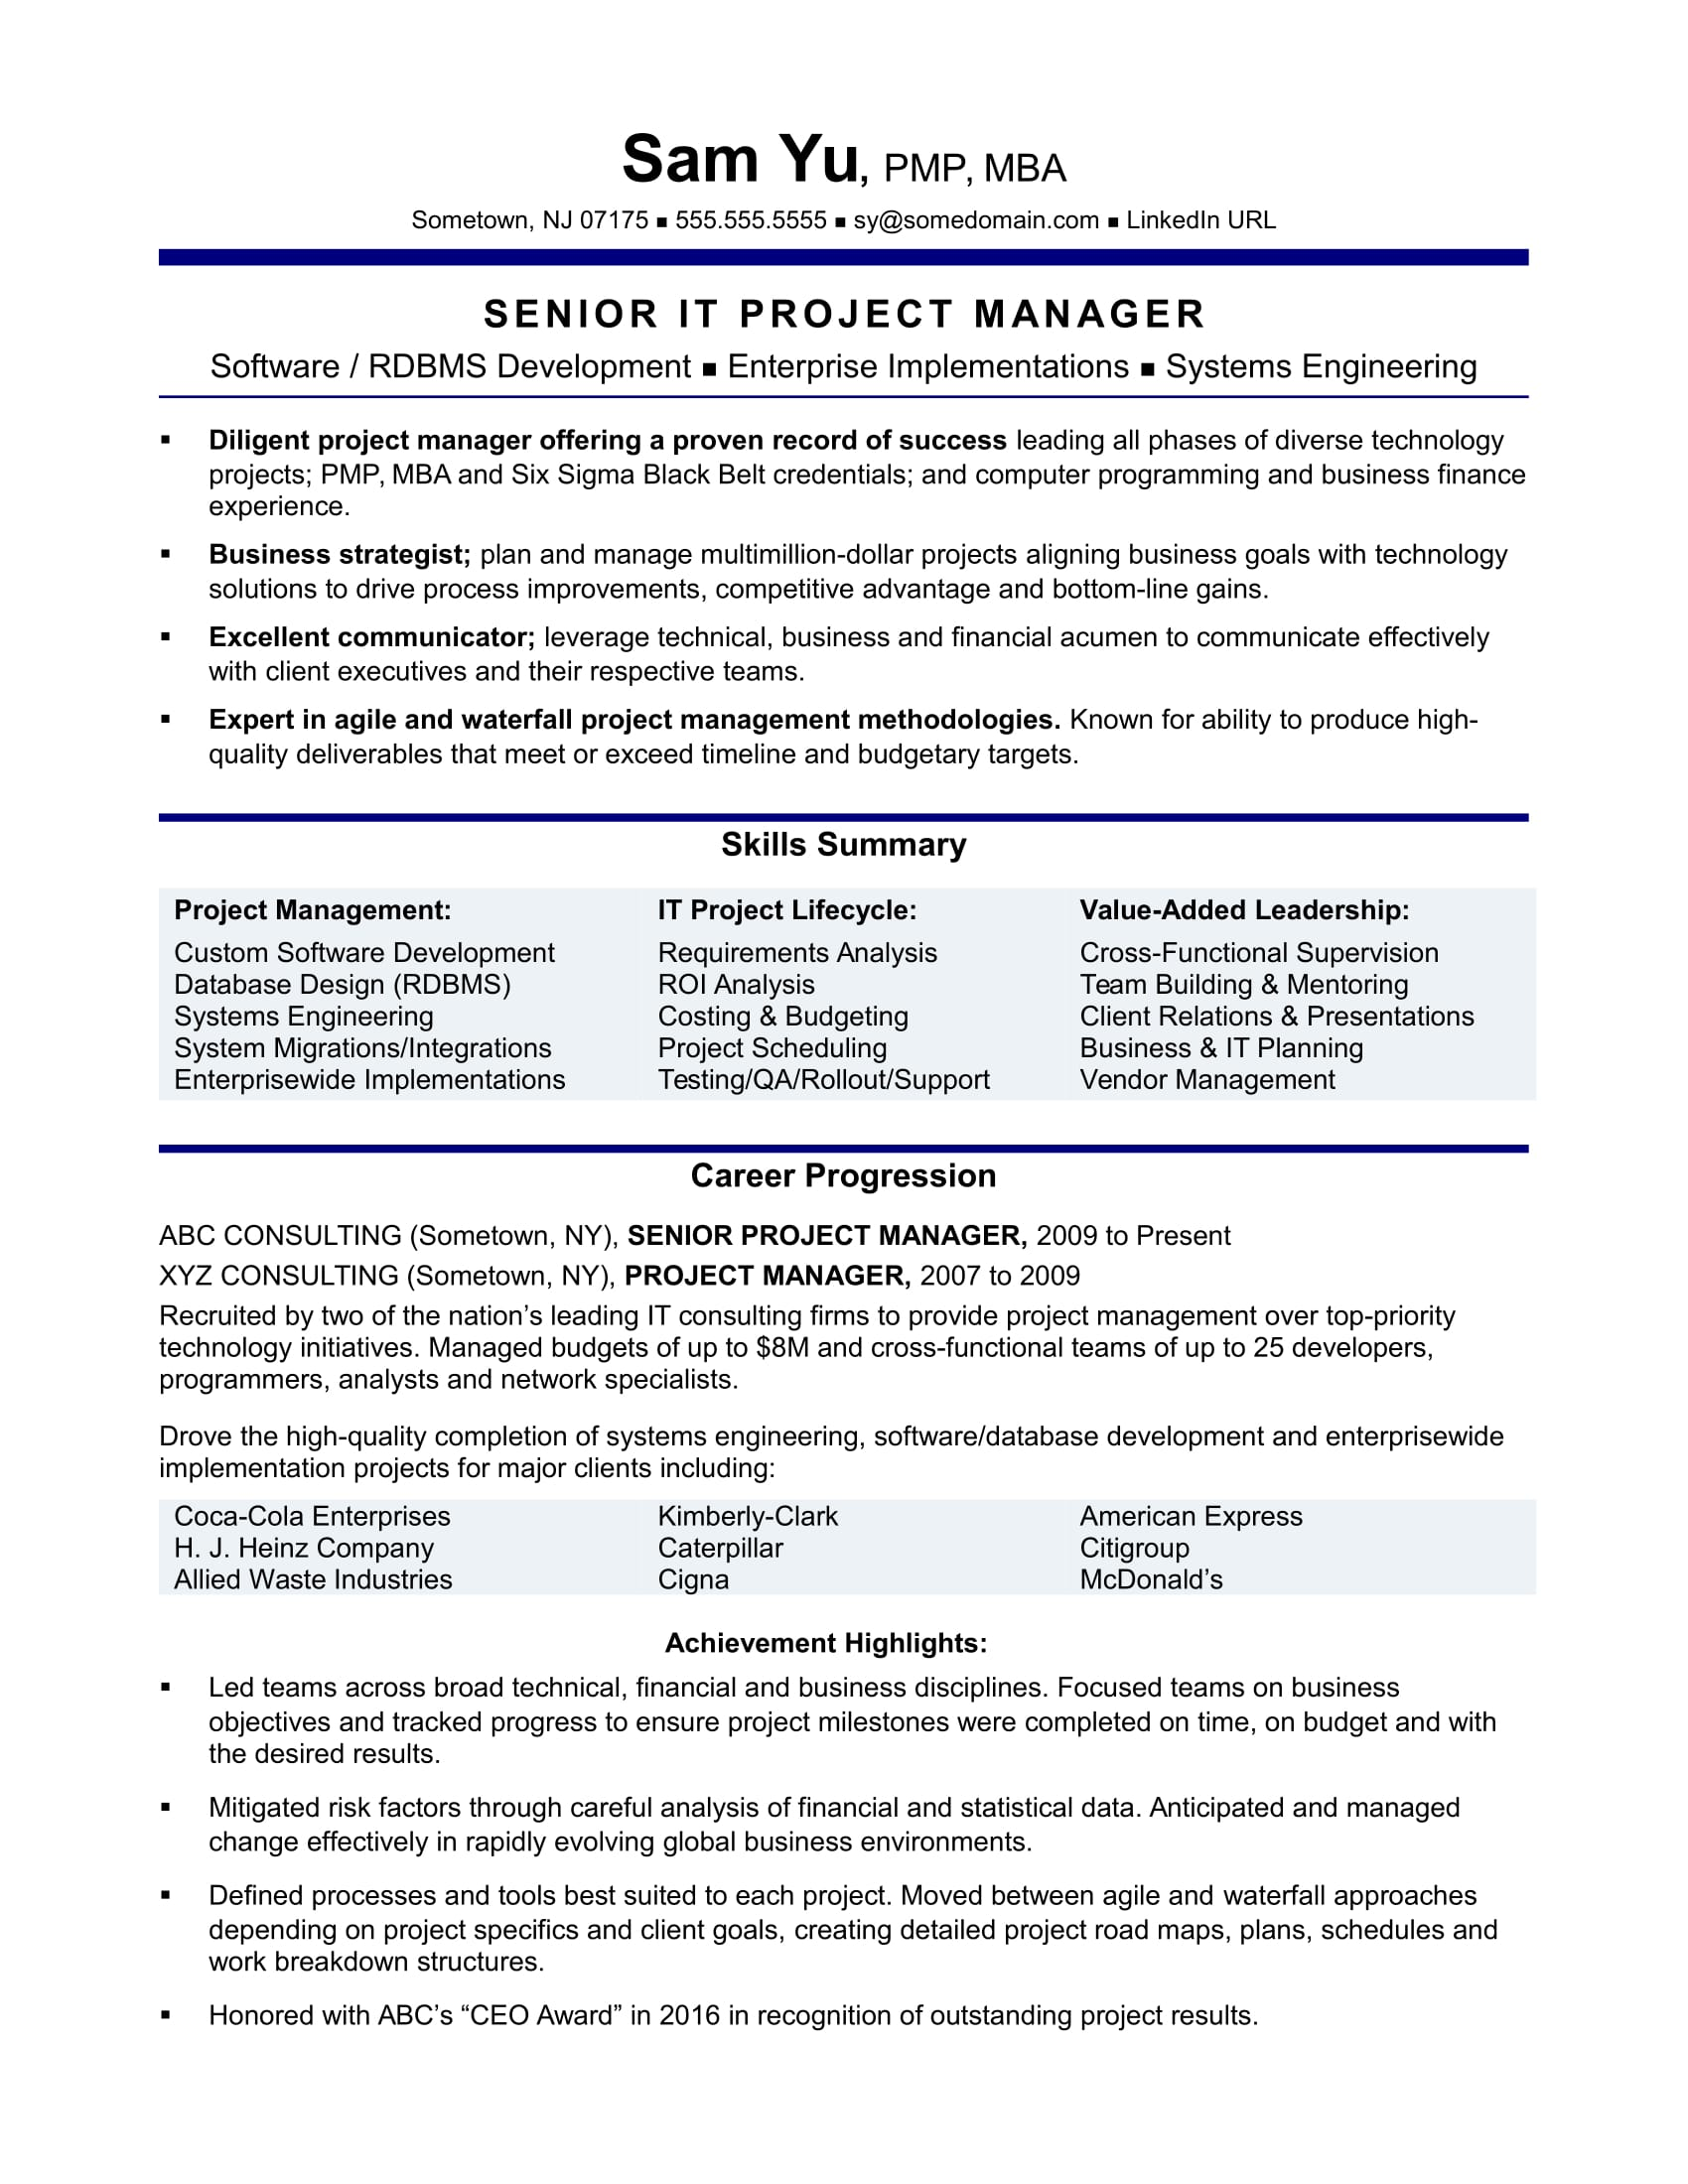 Experienced IT Project Manager Resume Sample  Software Engineering Manager Resume